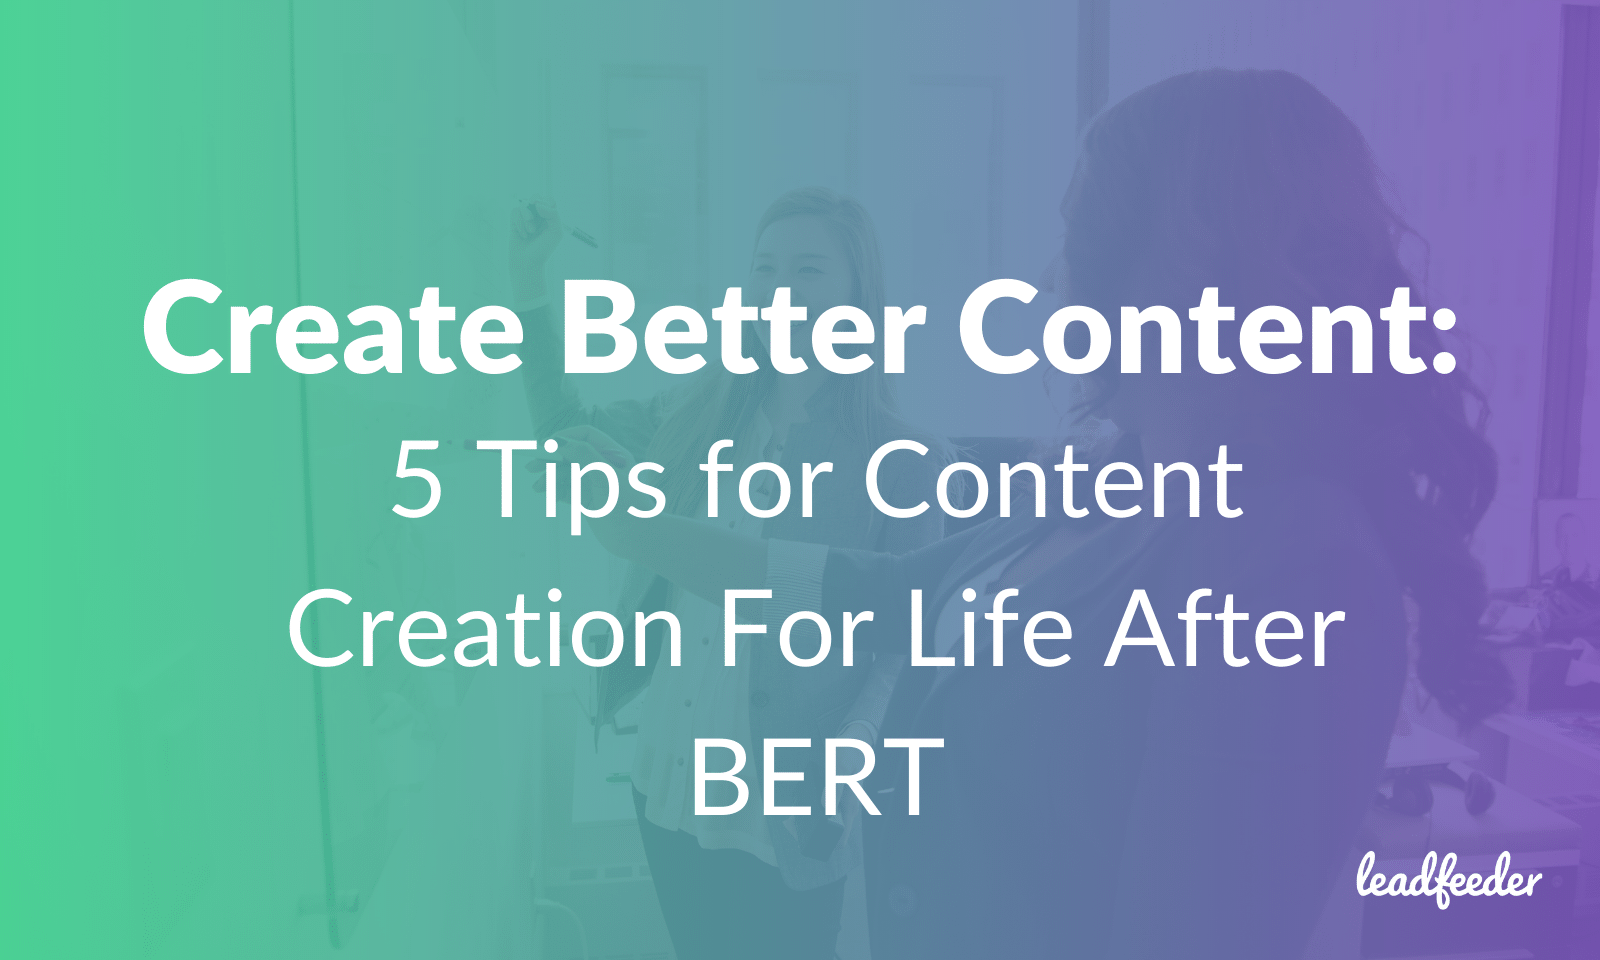 bert content creation header